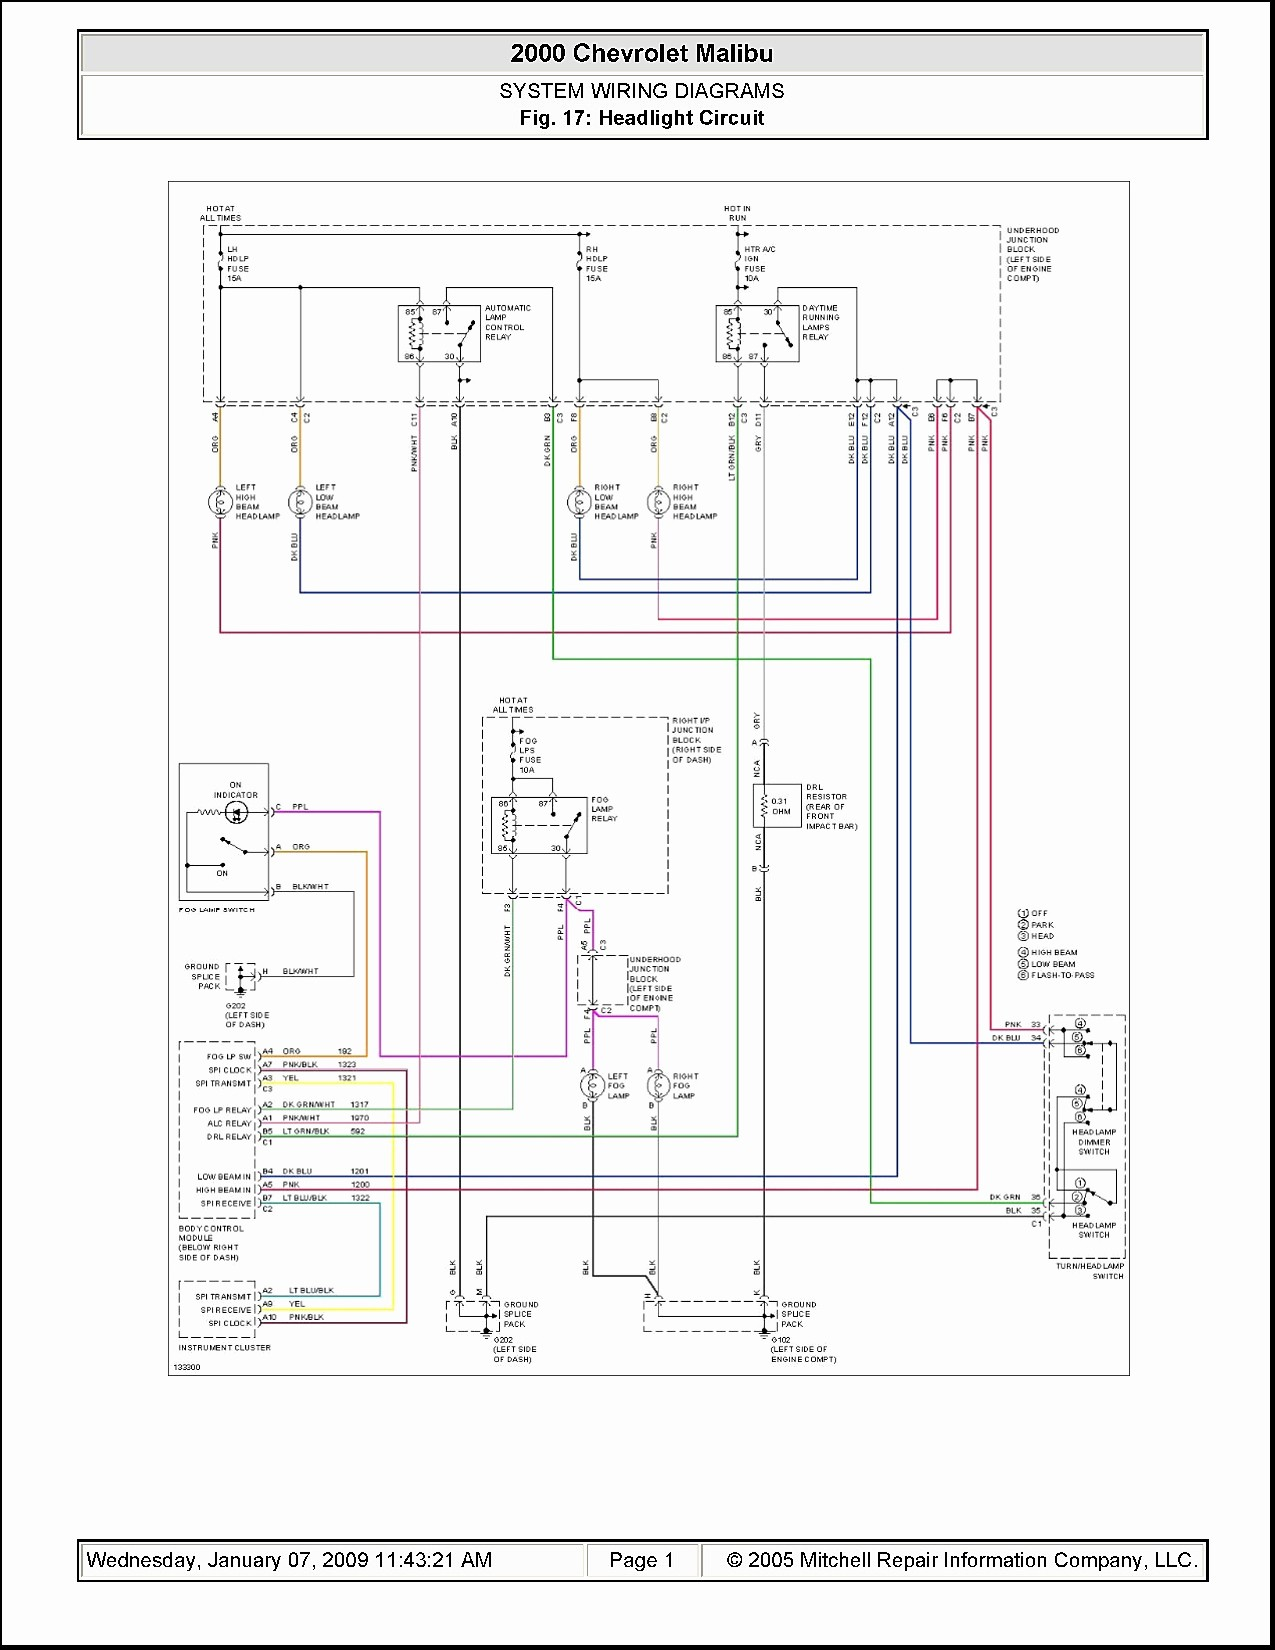 Hyundai Santa Fe Wiring Diagram Hyundai Wiring Diagrams Free Beautiful Magnificent Hyundai Tiburon Of Hyundai Santa Fe Wiring Diagram